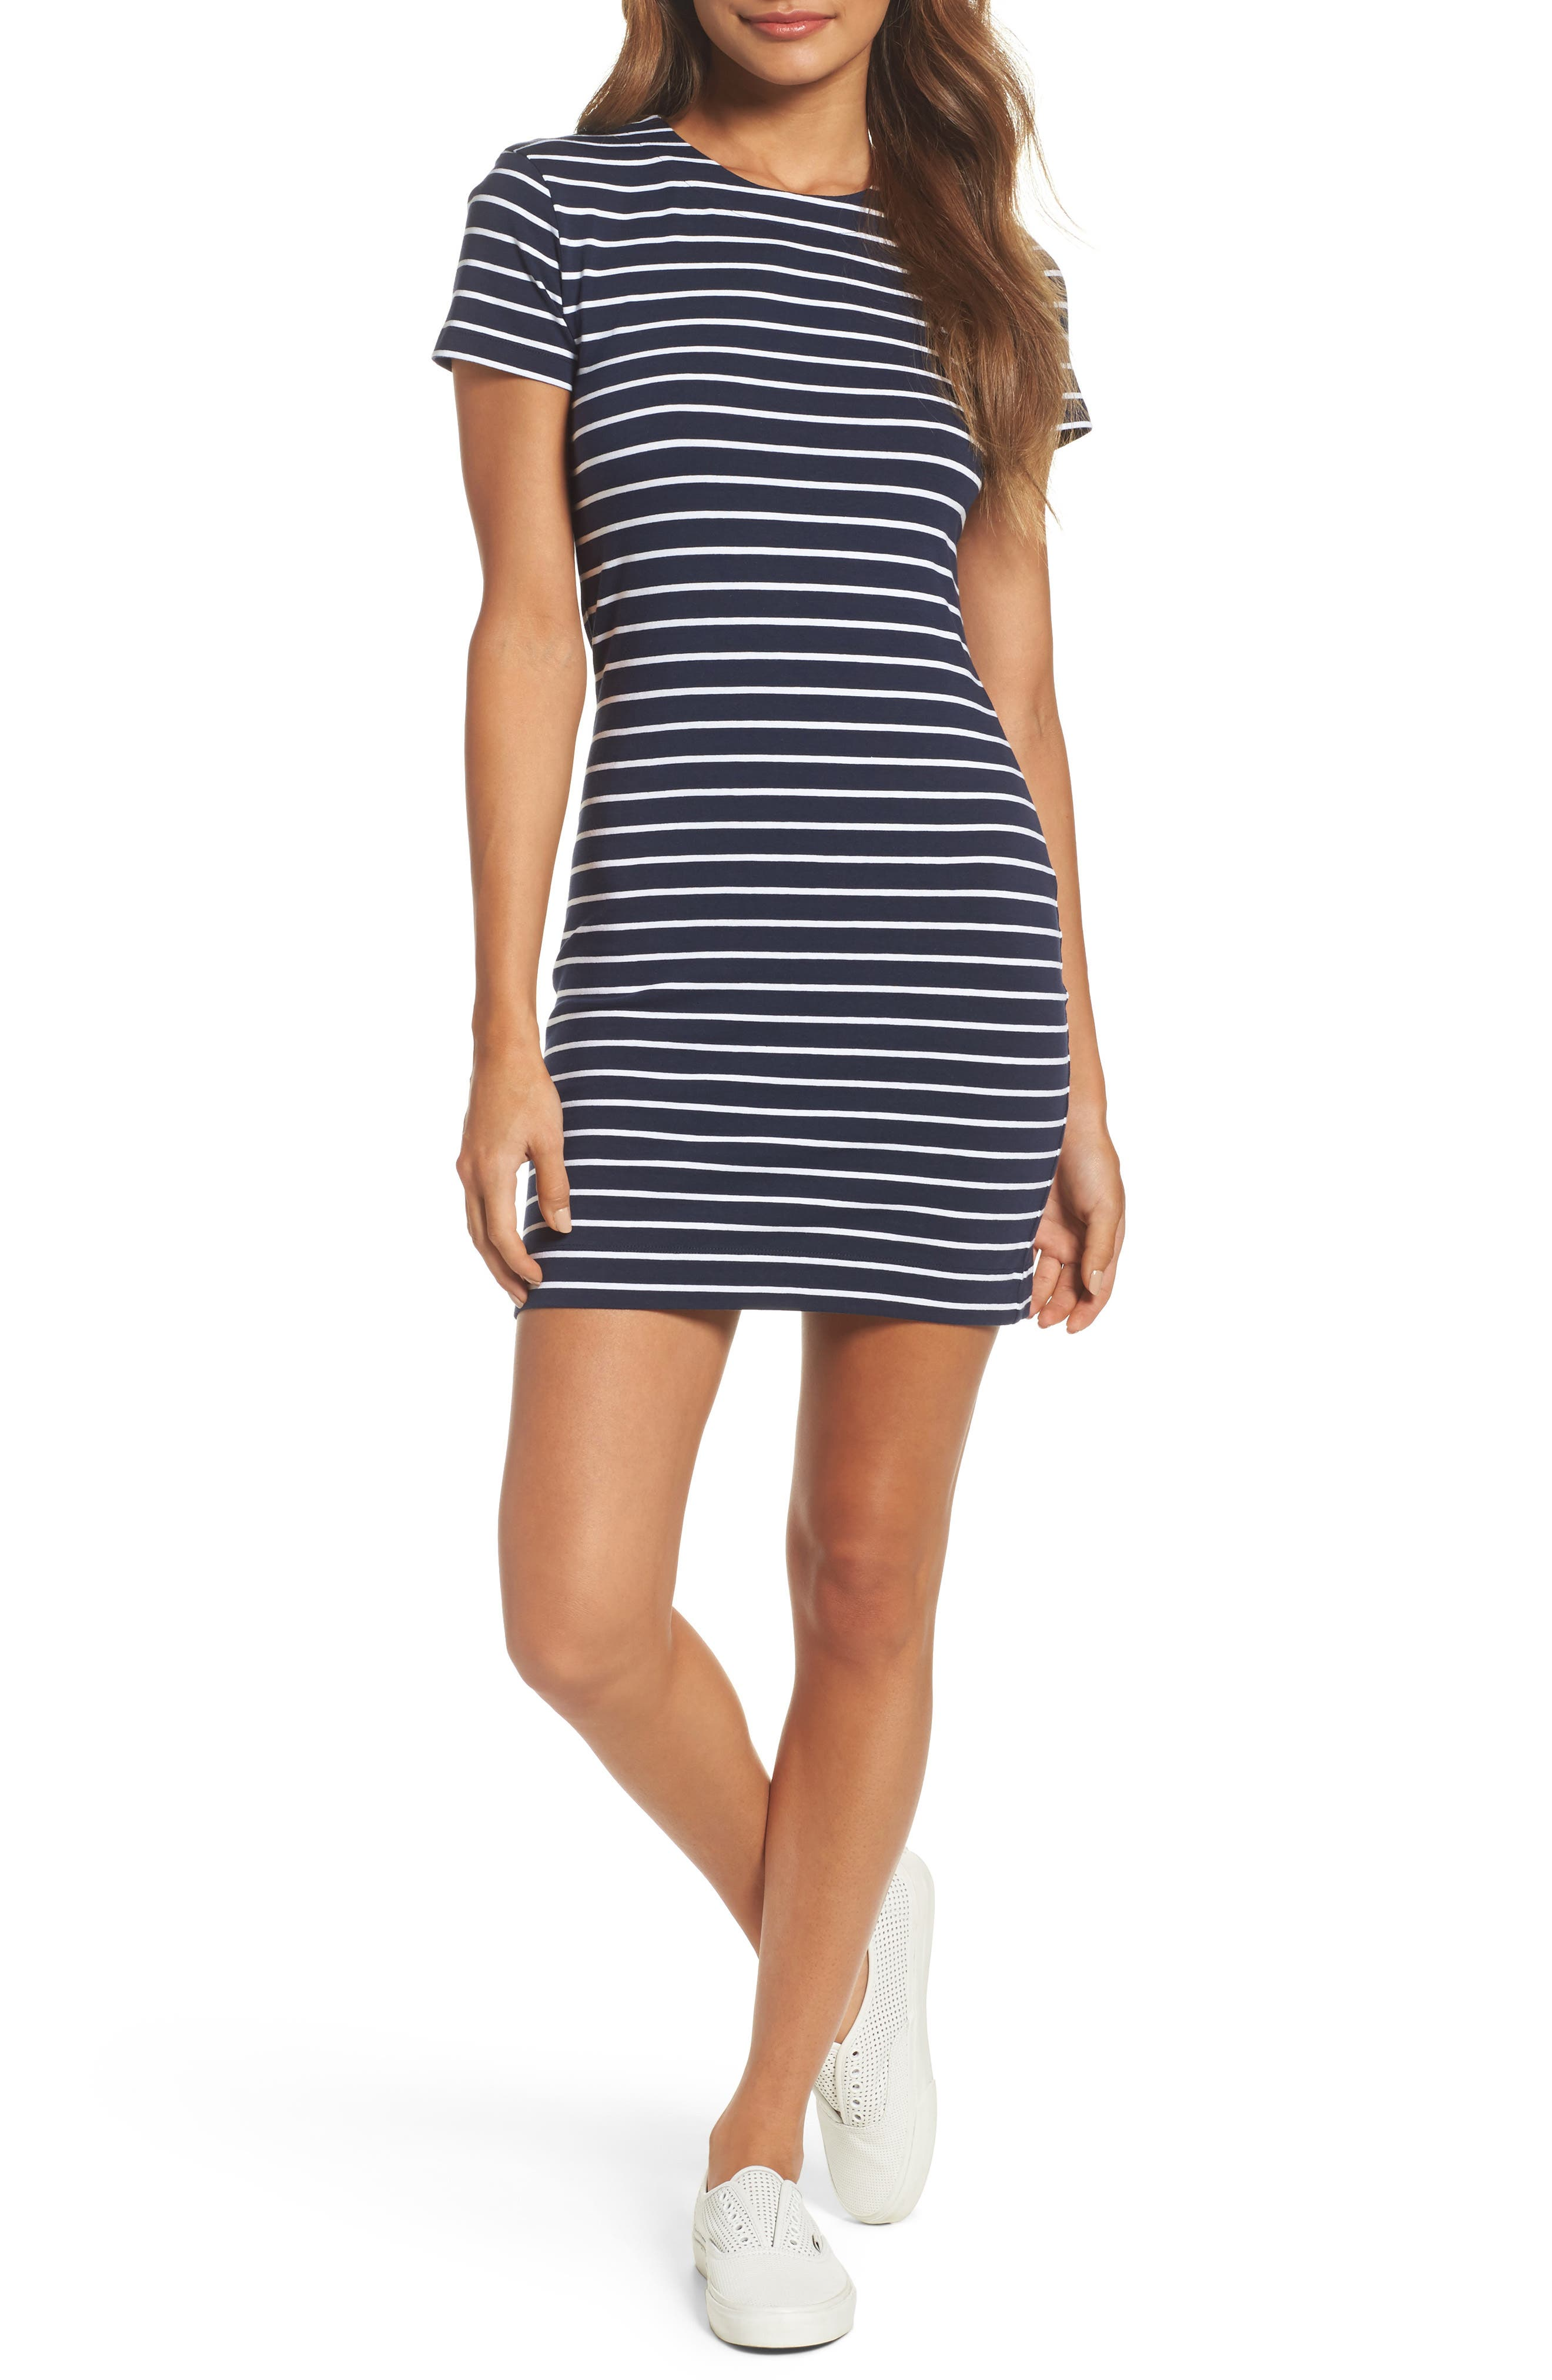 Alternate Image 1 Selected - French Connection Stripe T-Shirt Dress